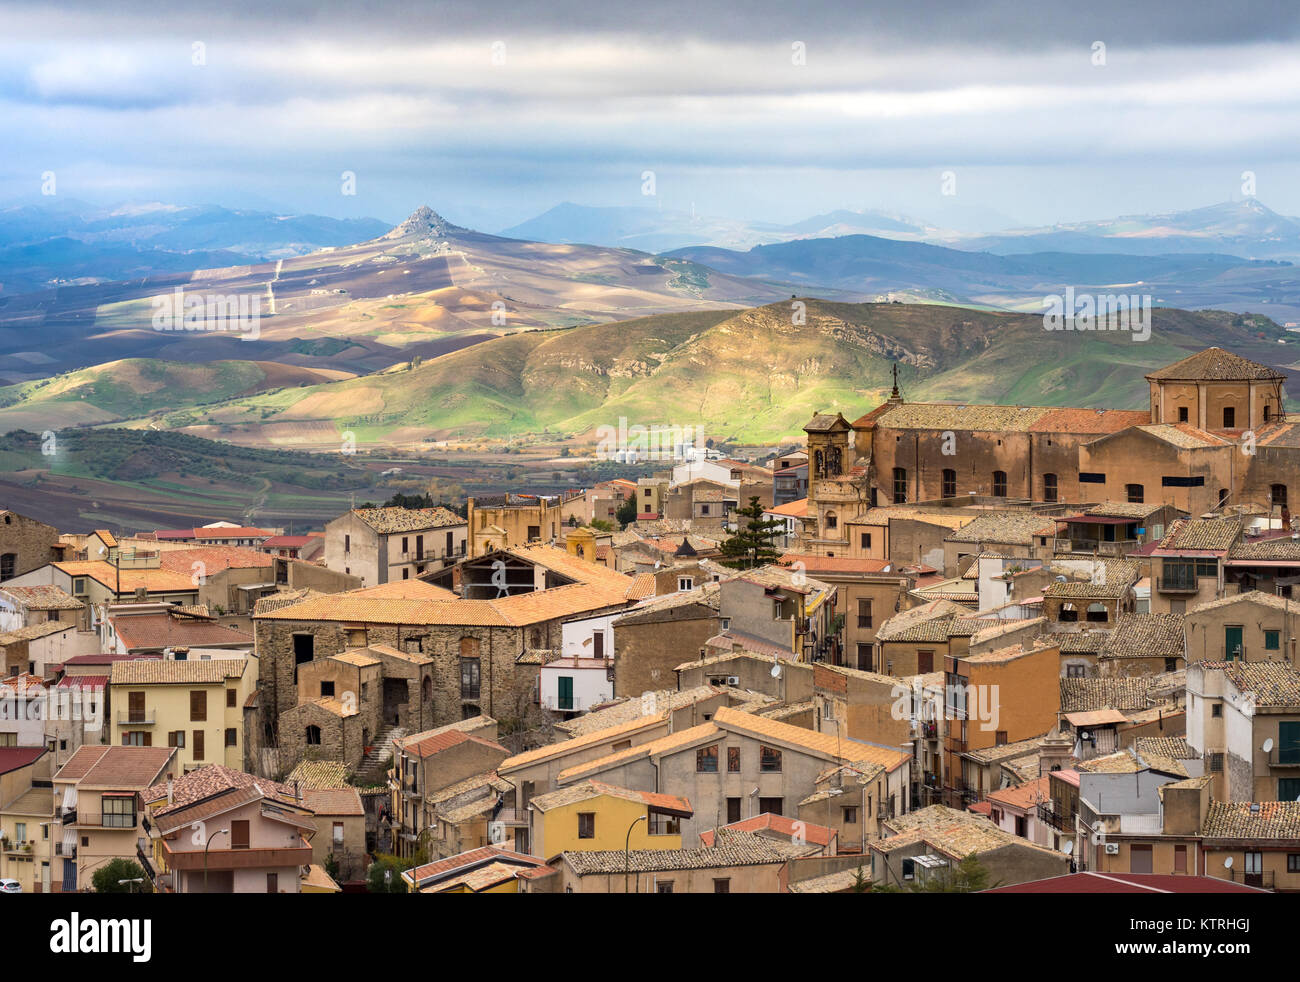 Corleone captured from above near SS Salvatore monastery - Stock Image